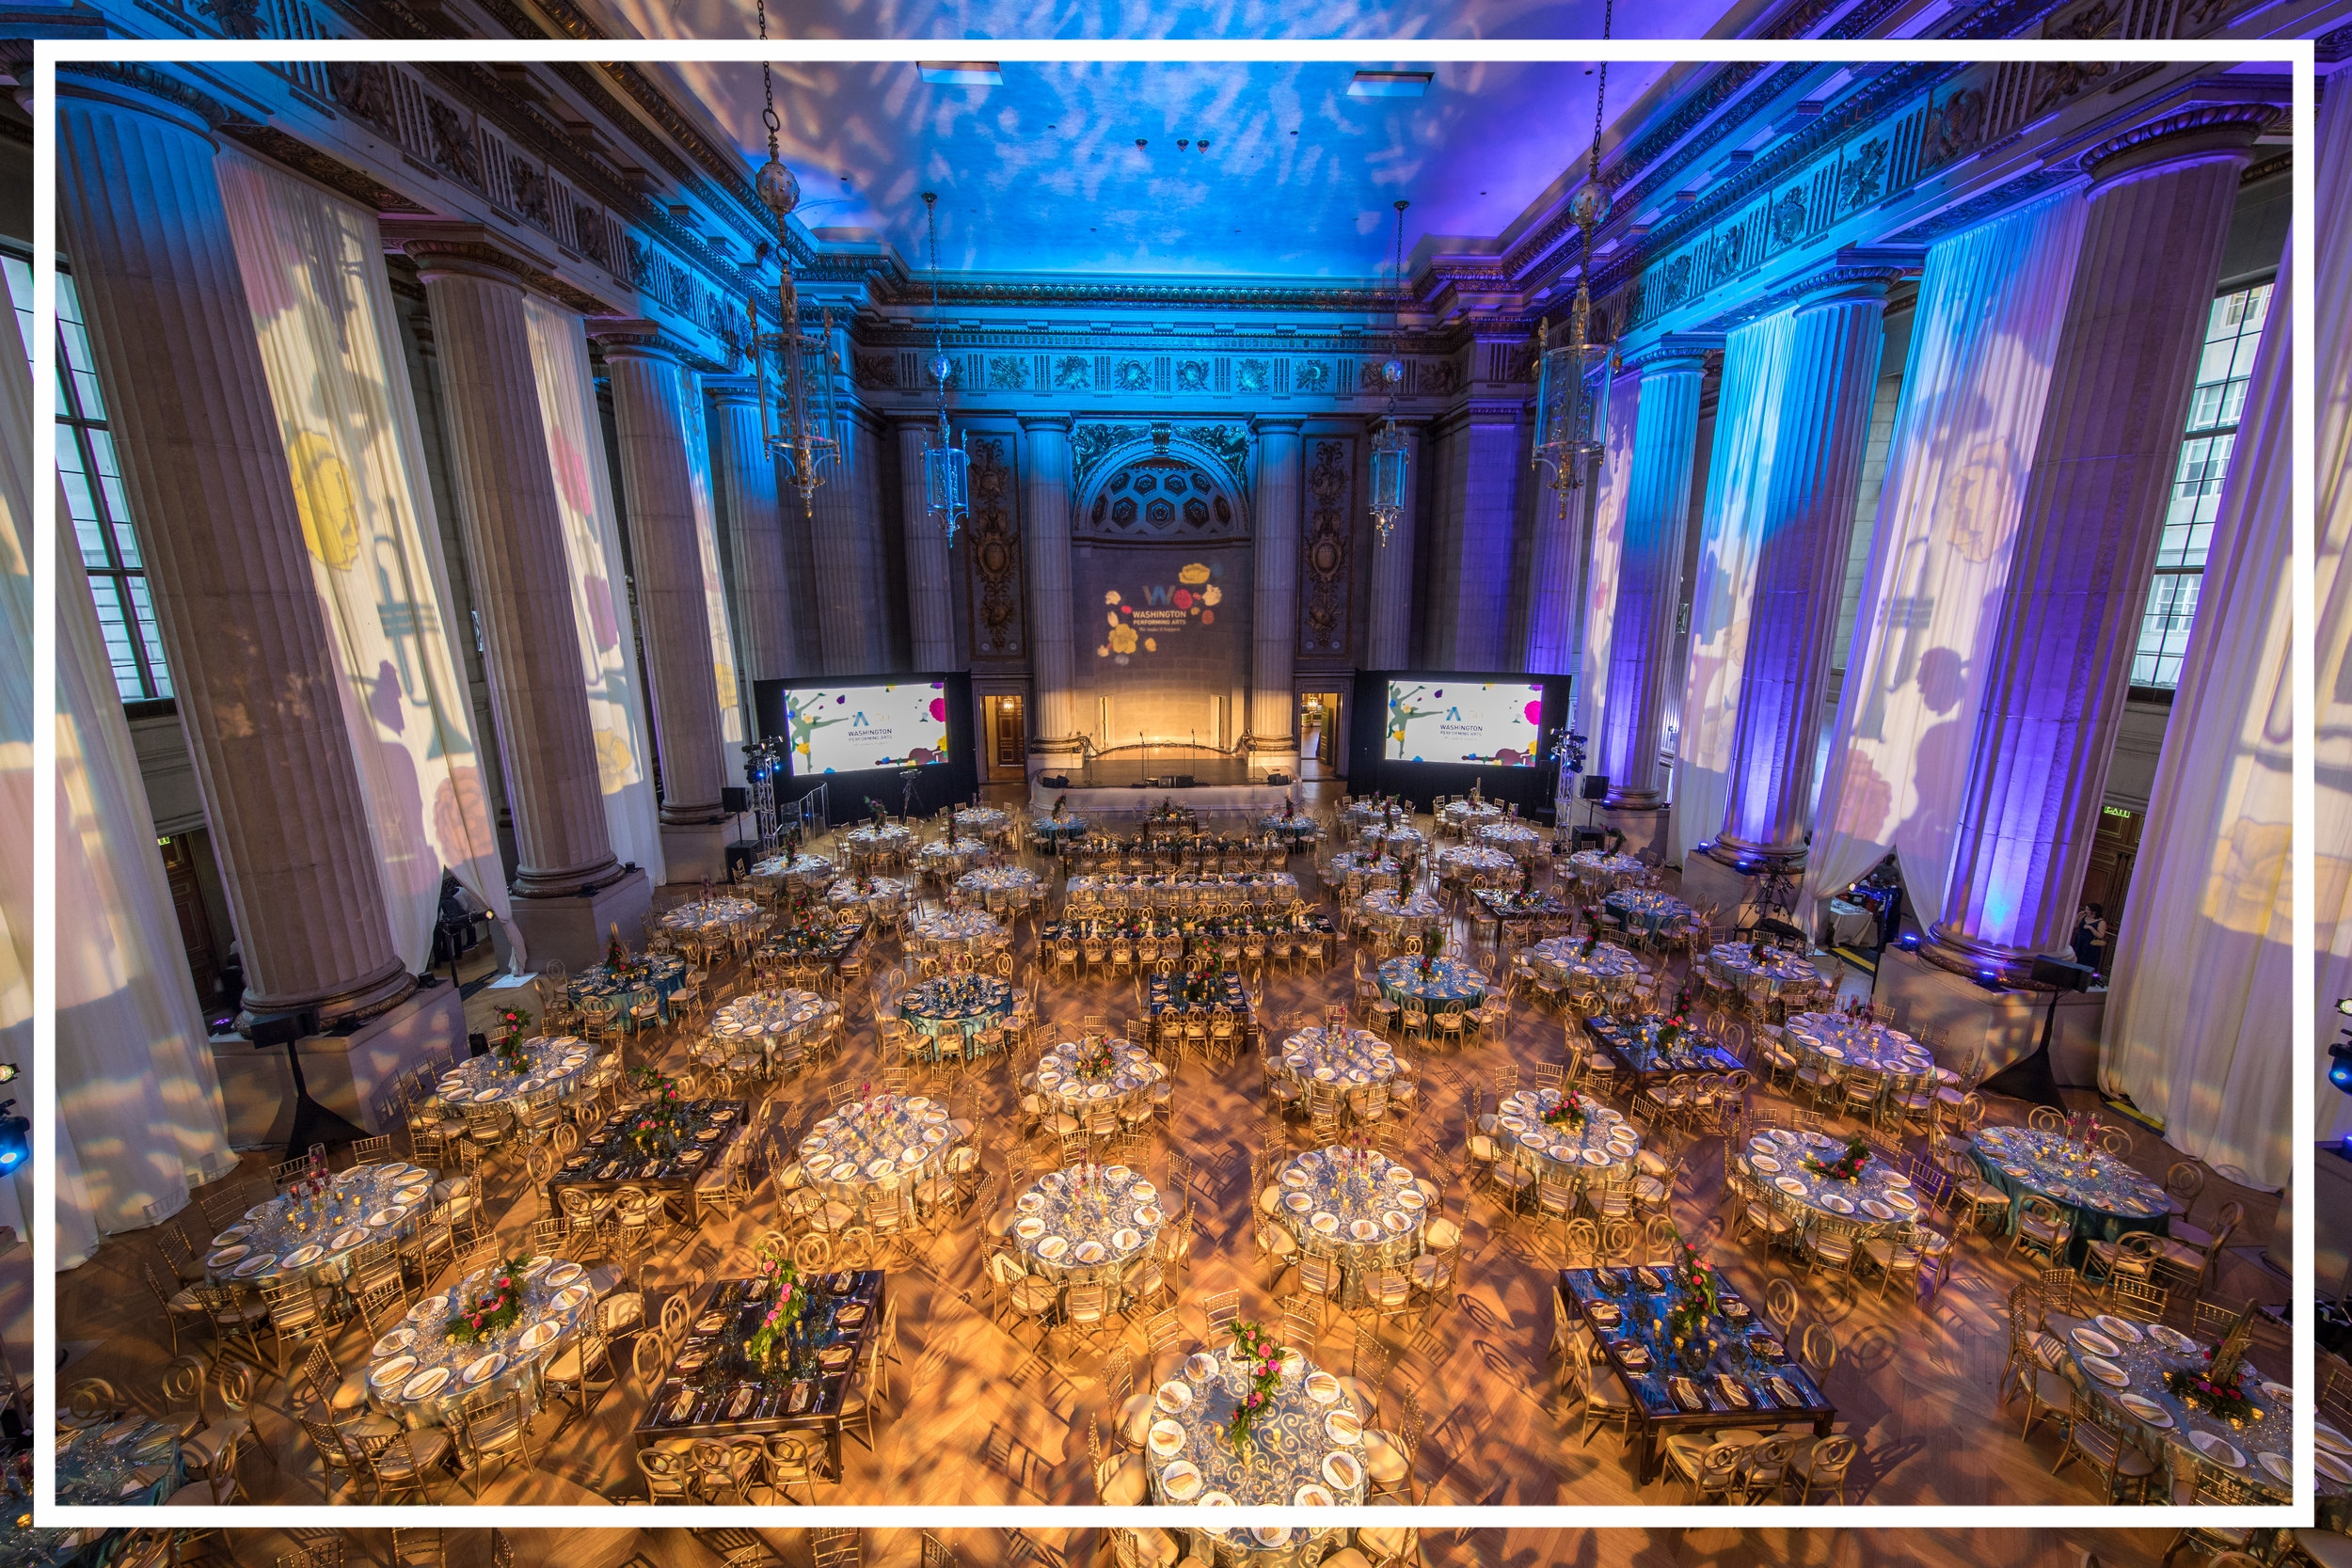 Washington Performing Arts Gala at the Mellon Auditorium